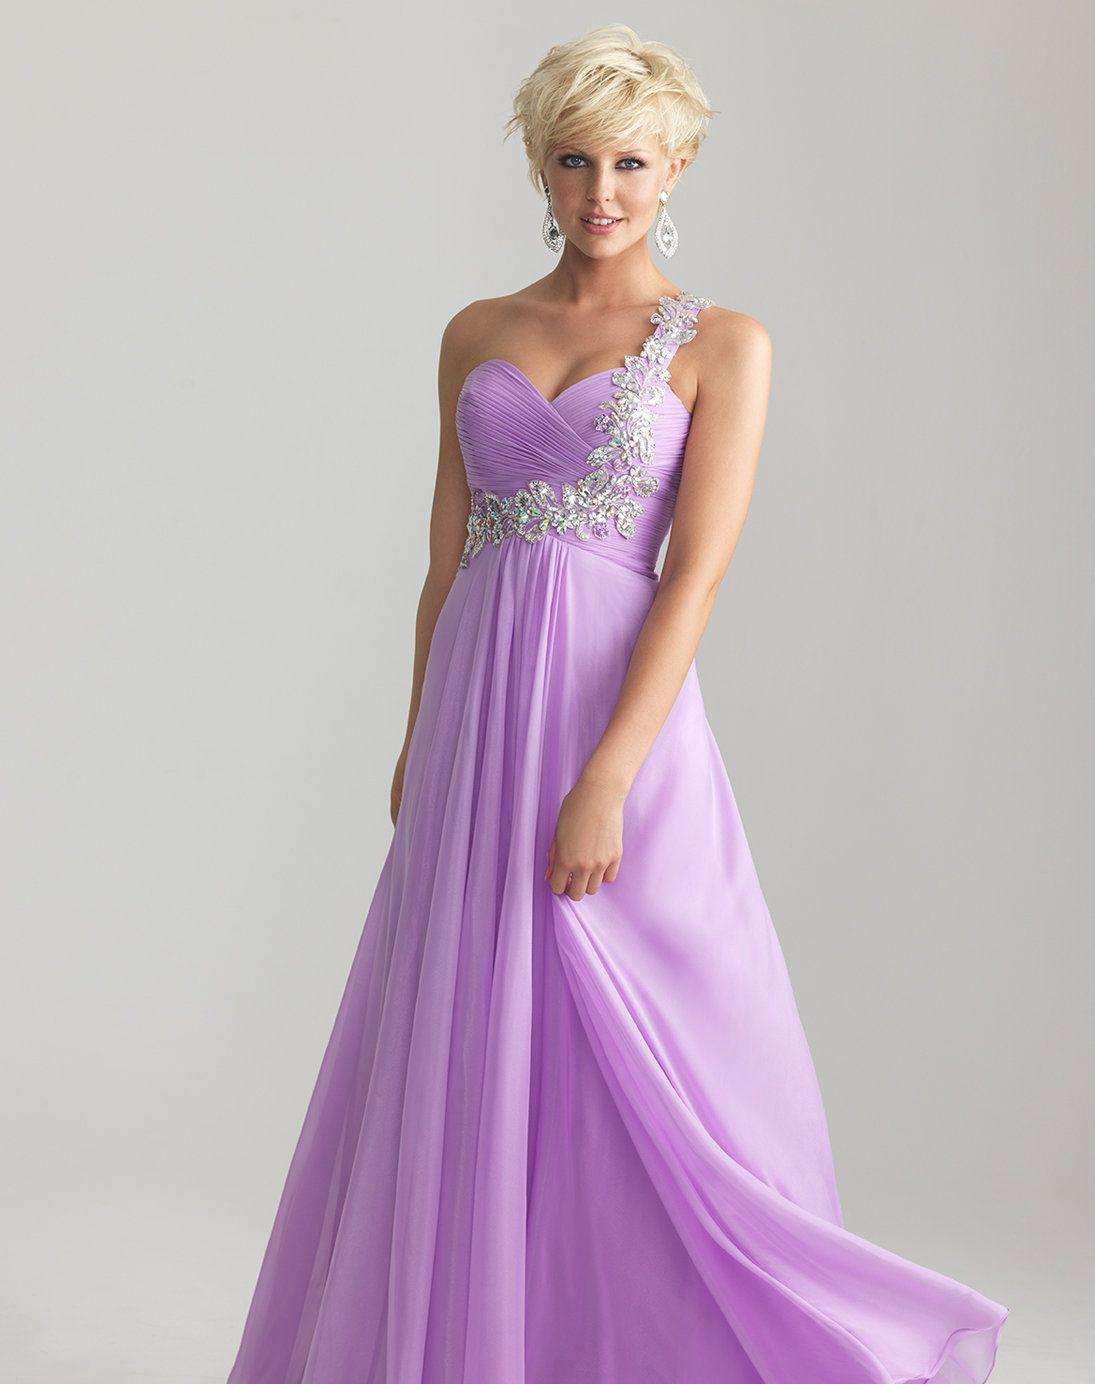 Lilac Chiffon Embellished One Shoulder Empire Waist Prom Dress ...